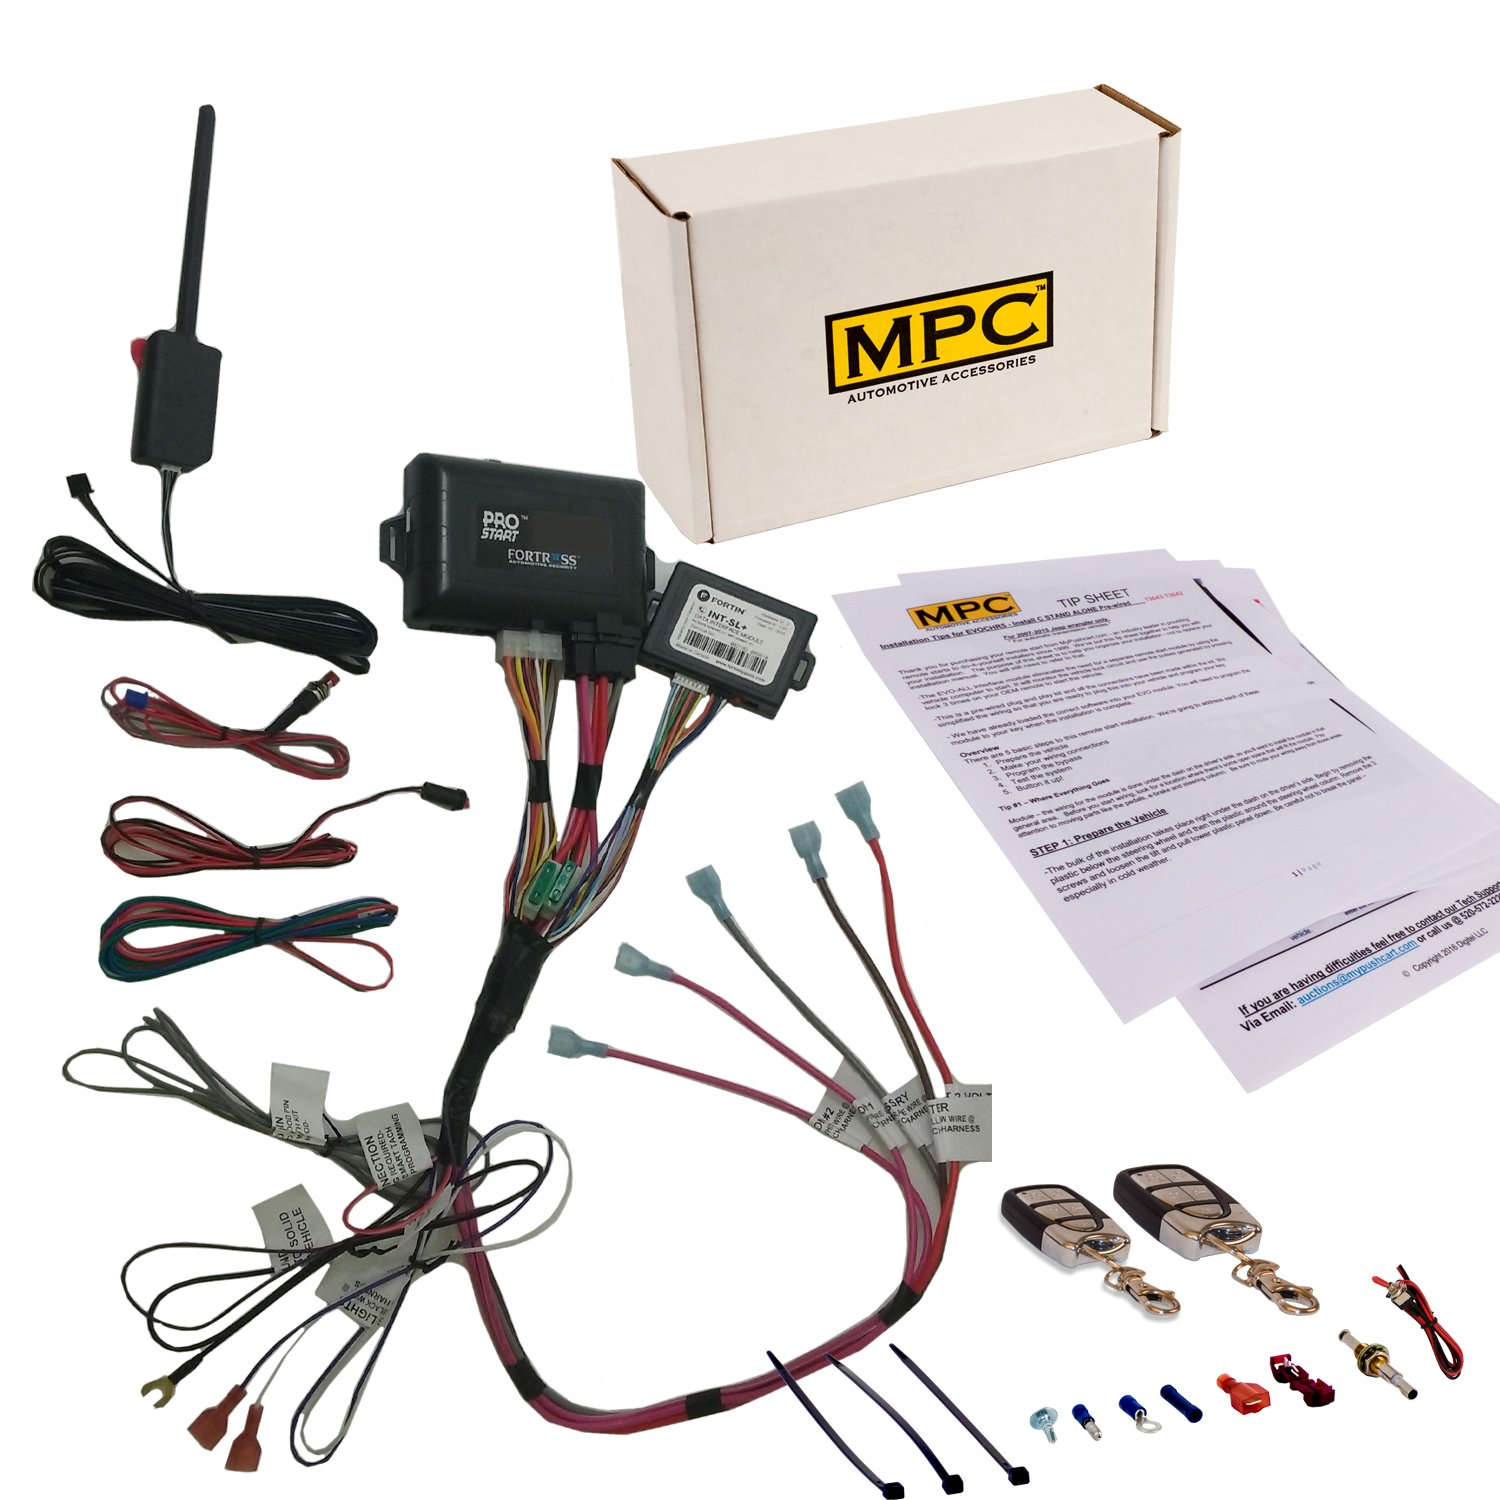 Amazon.com: MPC Remote Start & Keyless Entry Kit Fits Select Chevrolet and  GMC Vehicles 2002-2009 - Prewired To Simplify Install!: Automotive